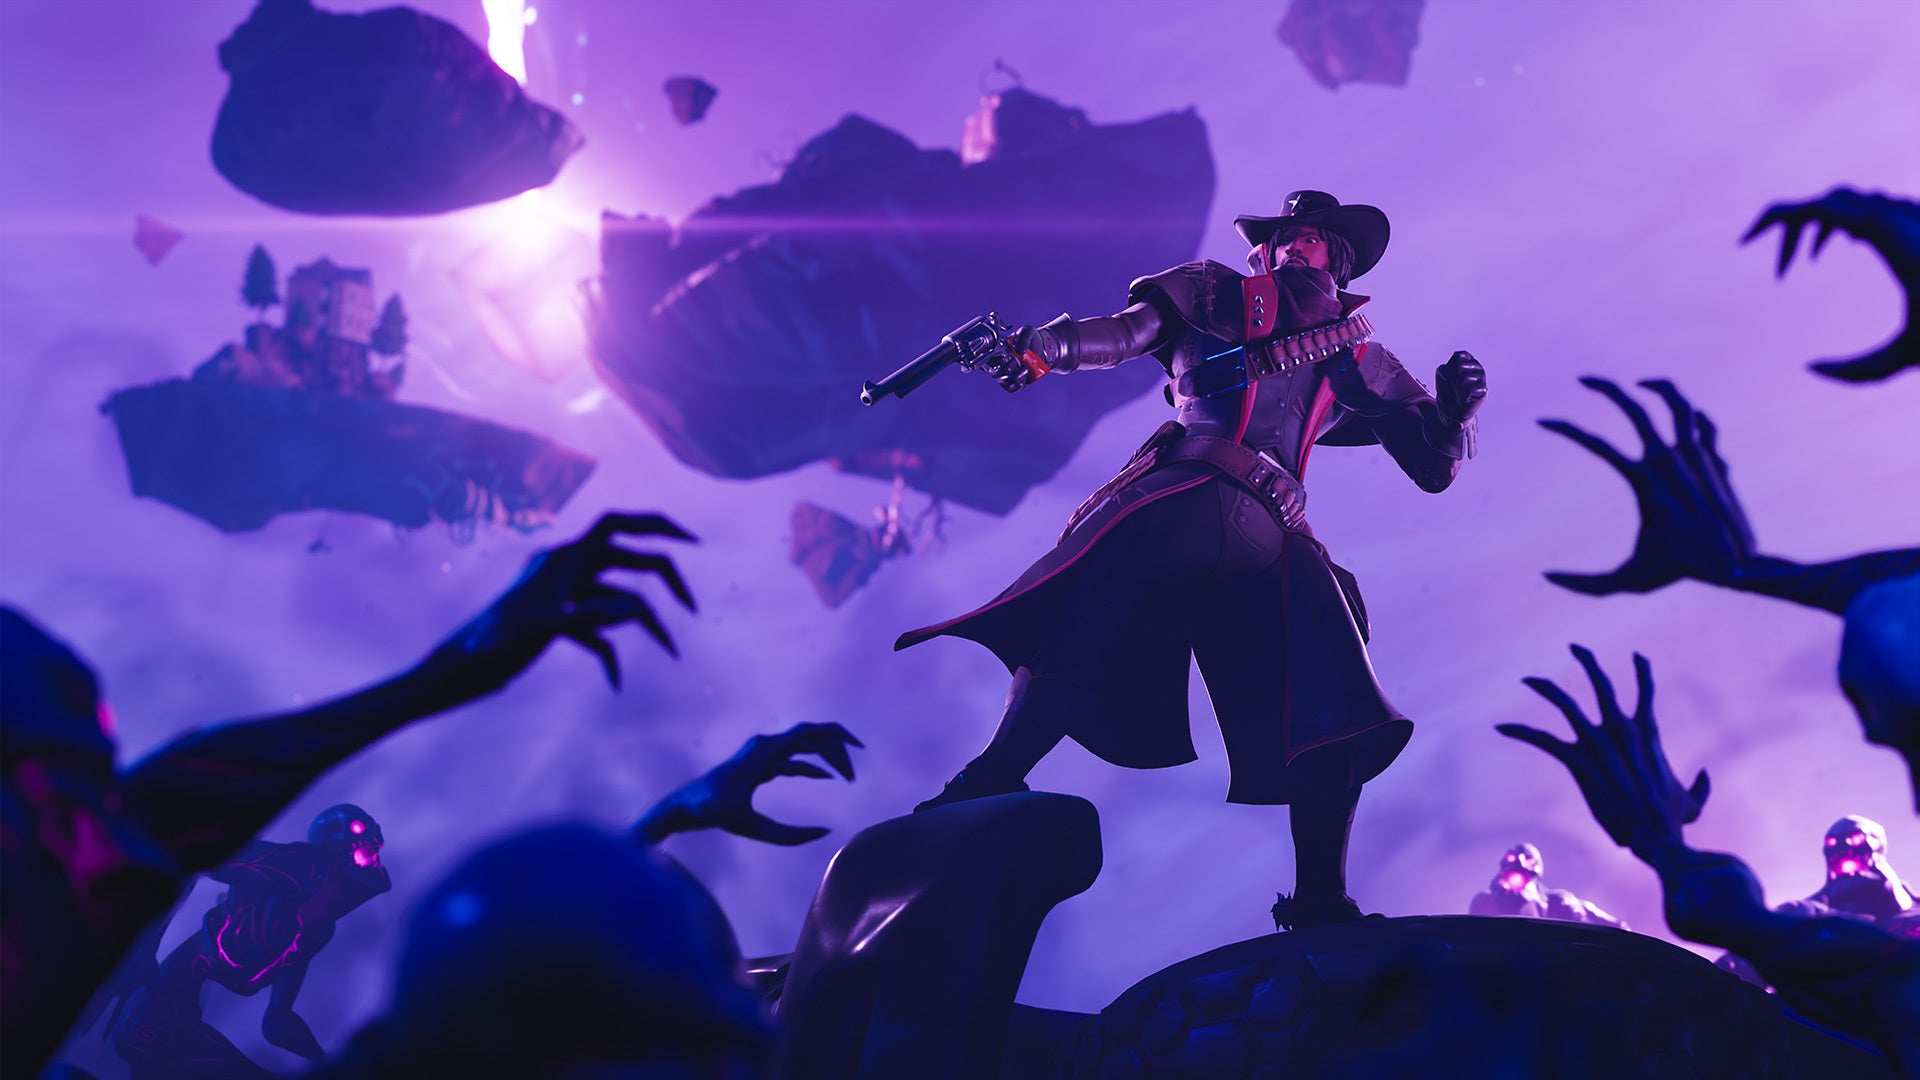 Win A Free Iphone 6 >> Fortnite cube explodes, watch what went down here   Trusted Reviews